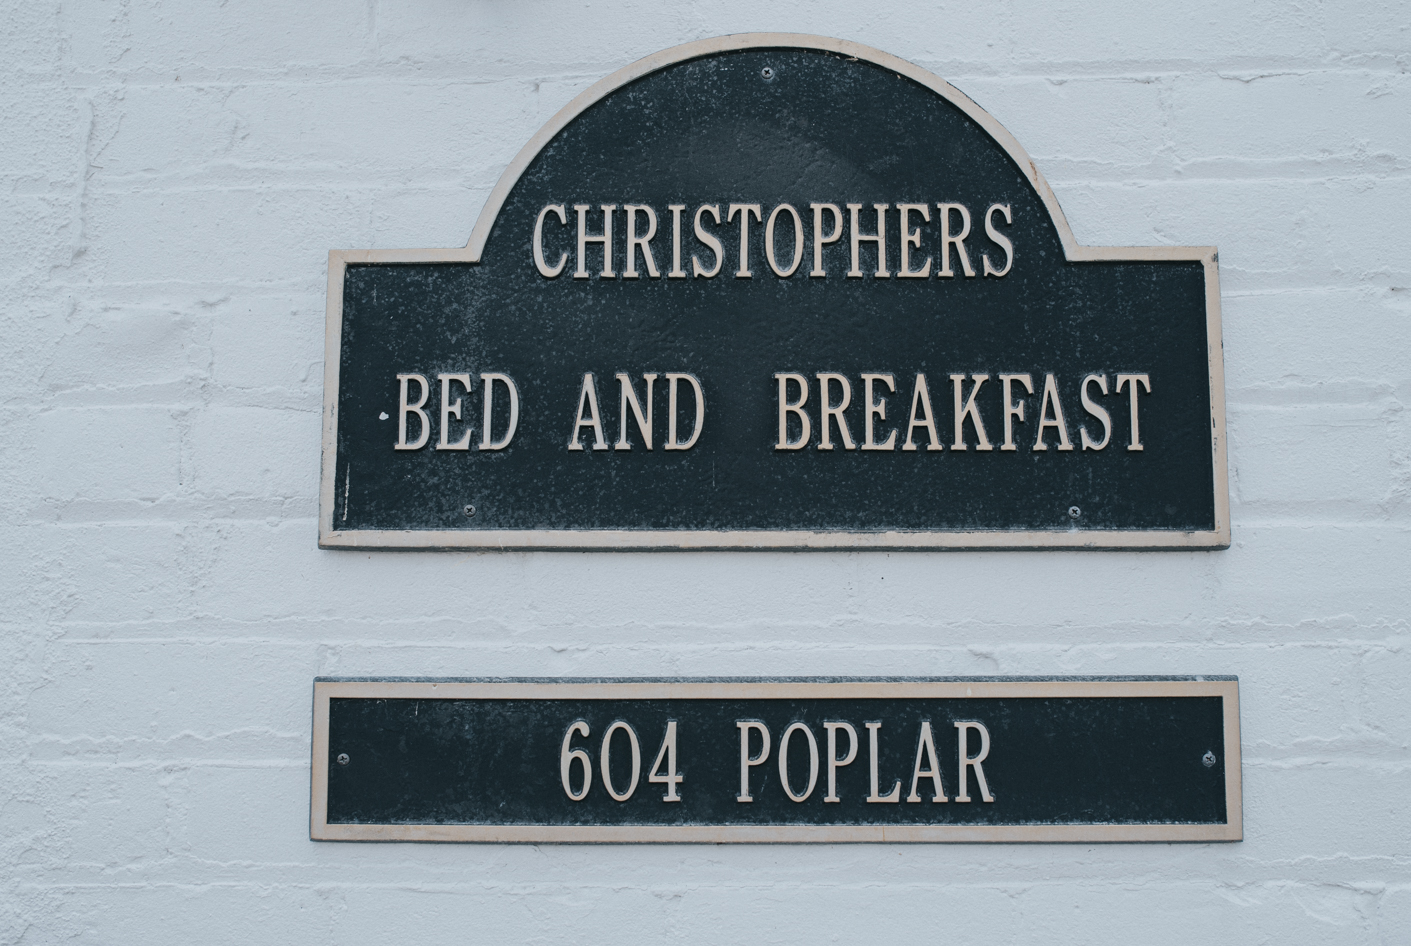 Christopher's Bed & Breakfast is as unique as inns come. Purchased in 1996, the Guidugli family turned this 19th-century church into a set of suites. It features three different stylized rooms starting at $135 per night. ADDRESS: 604 Poplar Street, Bellevue, KY 41073 / Image: Brianna Long // Published: 4.23.17